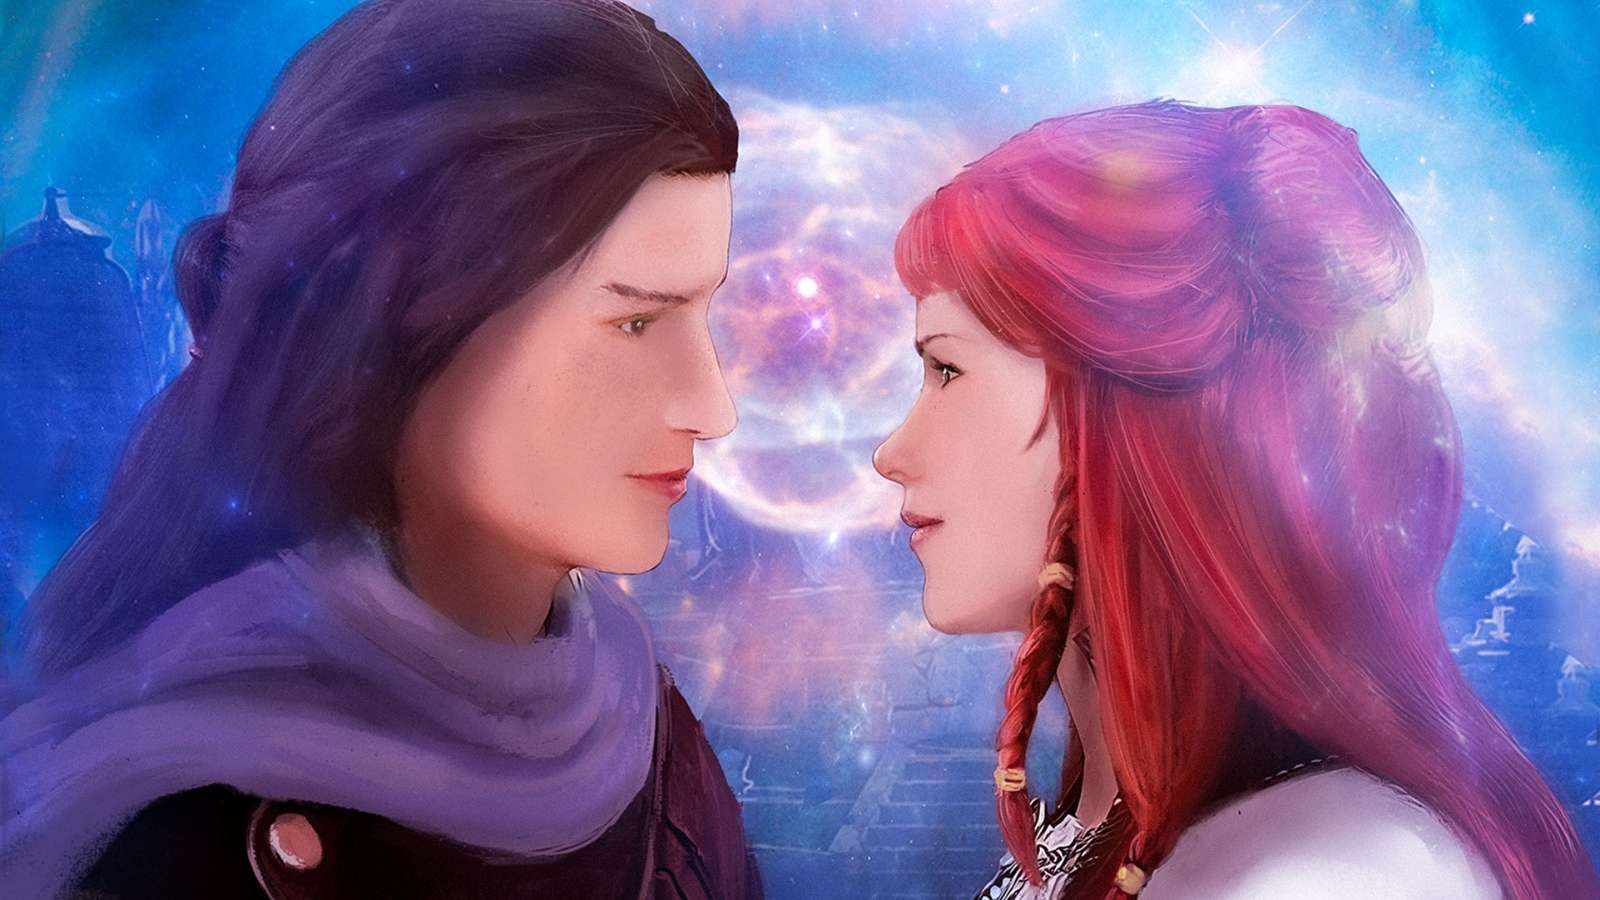 """The ruby. It was iridescent, glowing like the most brilliant prism. He felt himself drop into a trance. He could commune with Adi. This time, though, the space of the trance was not cloudy and indistinct, but instead perfectly clear. He could see Adi and her surroundings with the same clarity as if he were looking into one of the karmic bubbles from the Mazes of the Mind"""